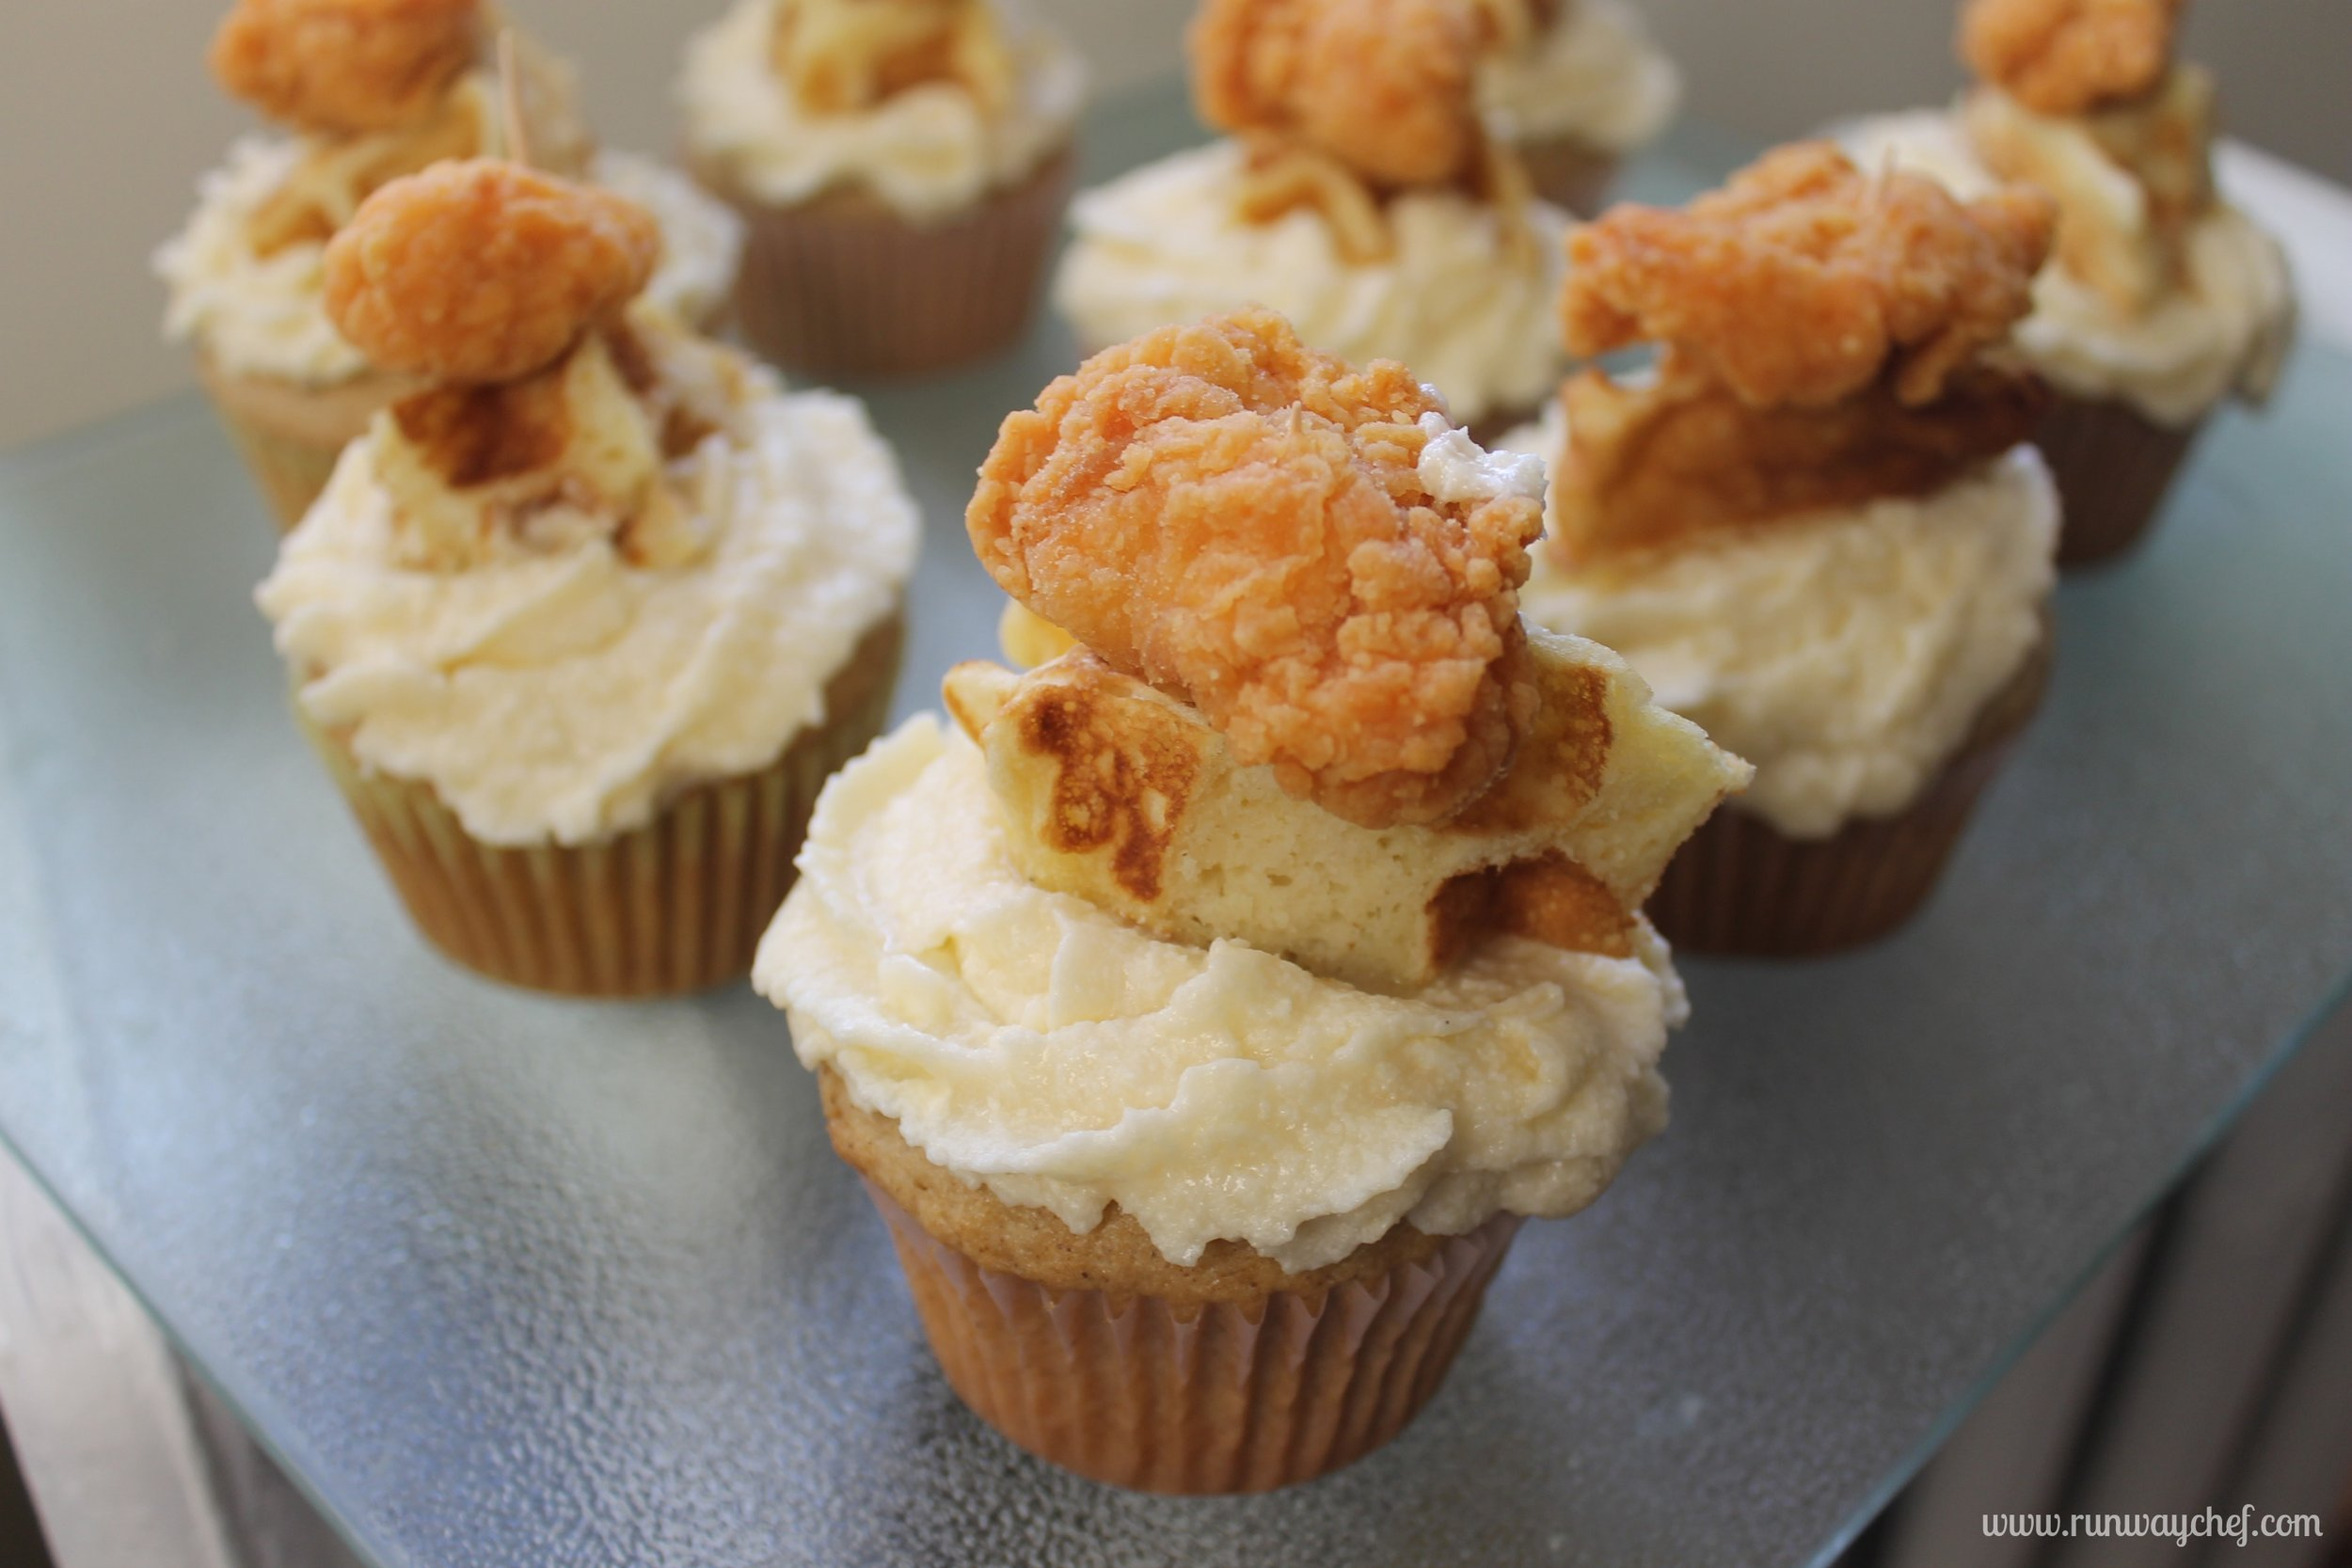 Chicken 'N Waffles Cupcakes - yields 9